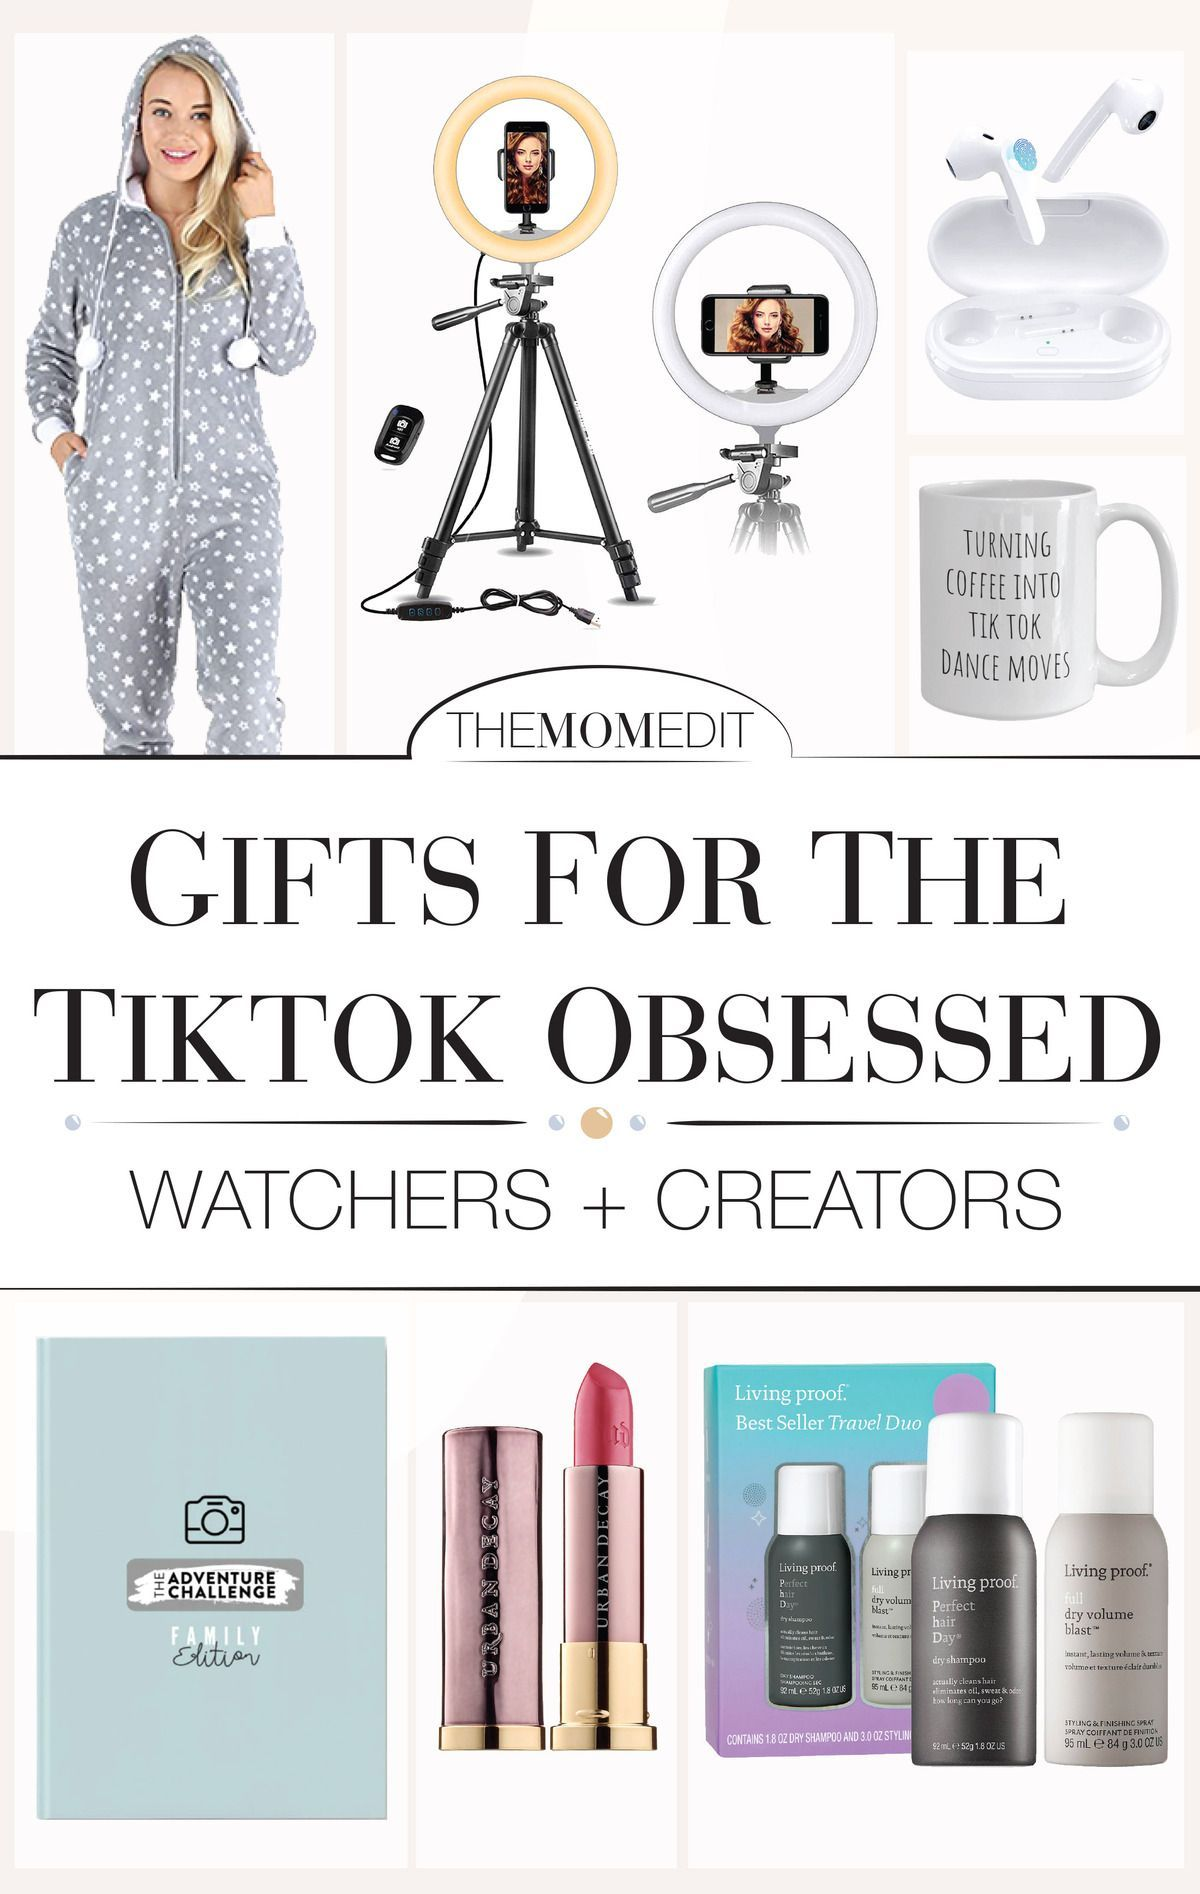 Gift Guide For The Tiktok Obsessed In 2021 Gifts Quirky Gifts Best Gifts